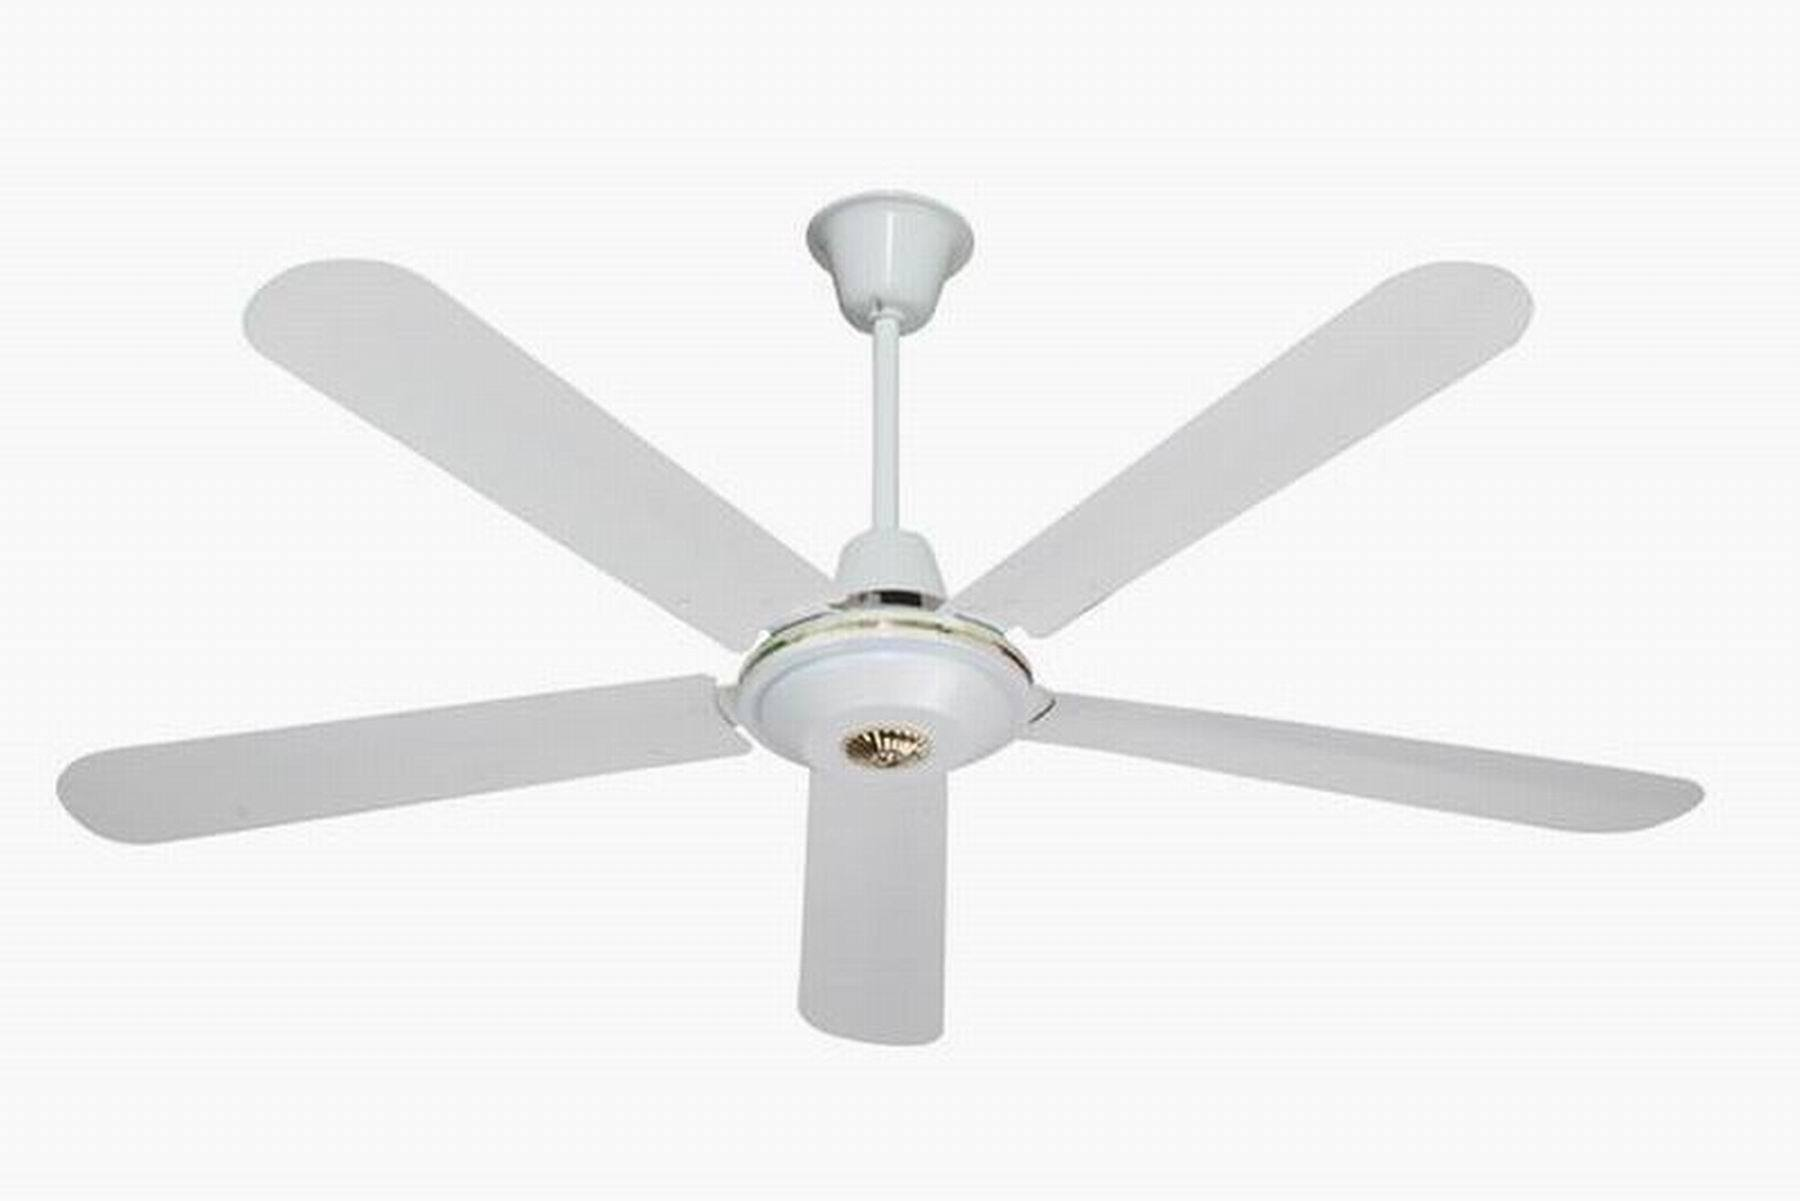 High Velocity Fan Blade : China inch high speed ceiling fan blades photos